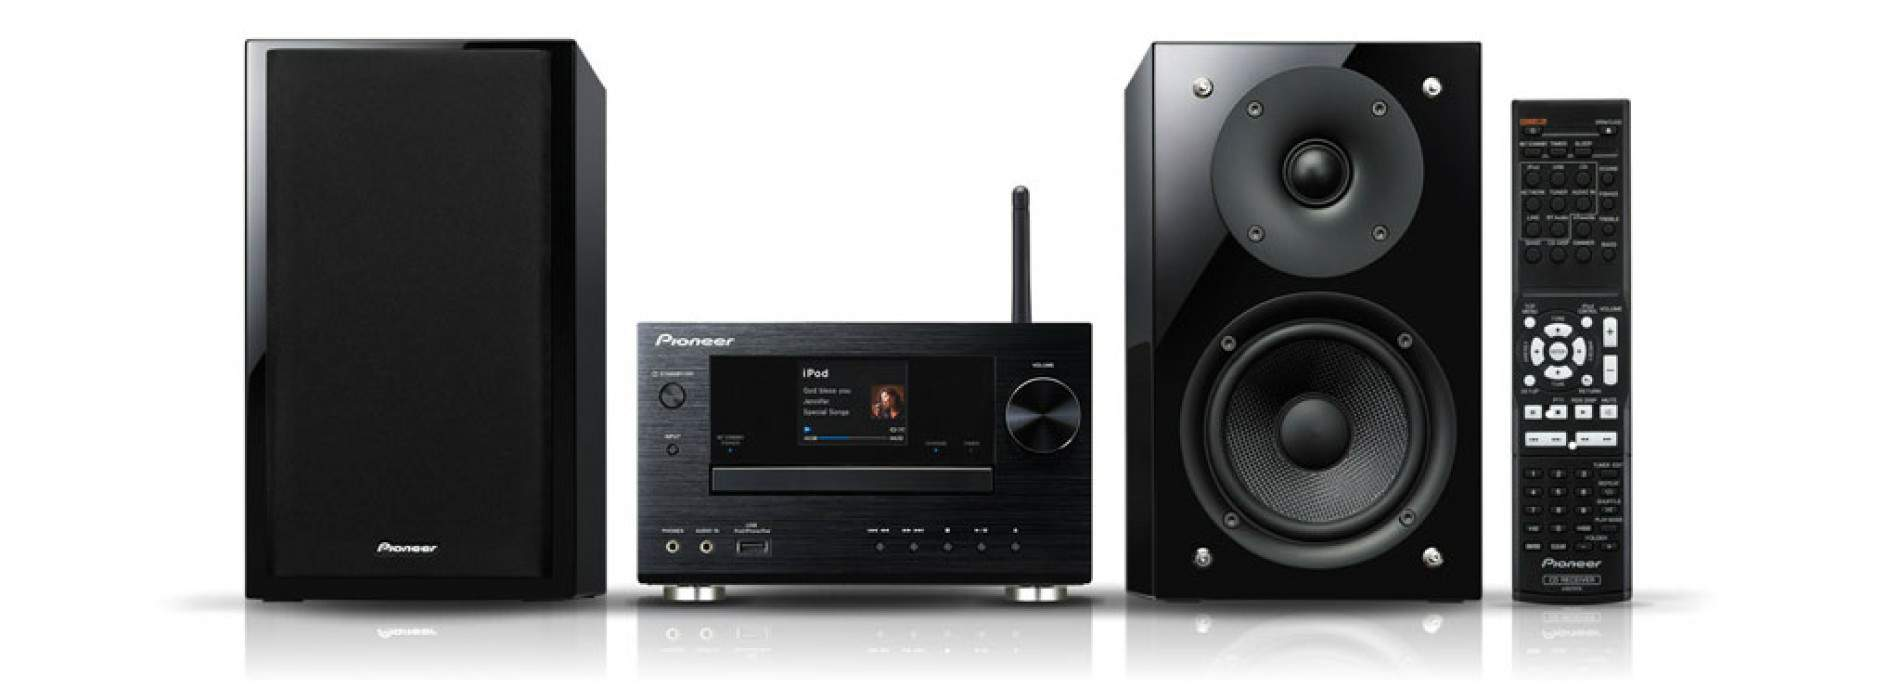 Microdadena X-HM81-K y Network Media Player N-50 de Pioneer